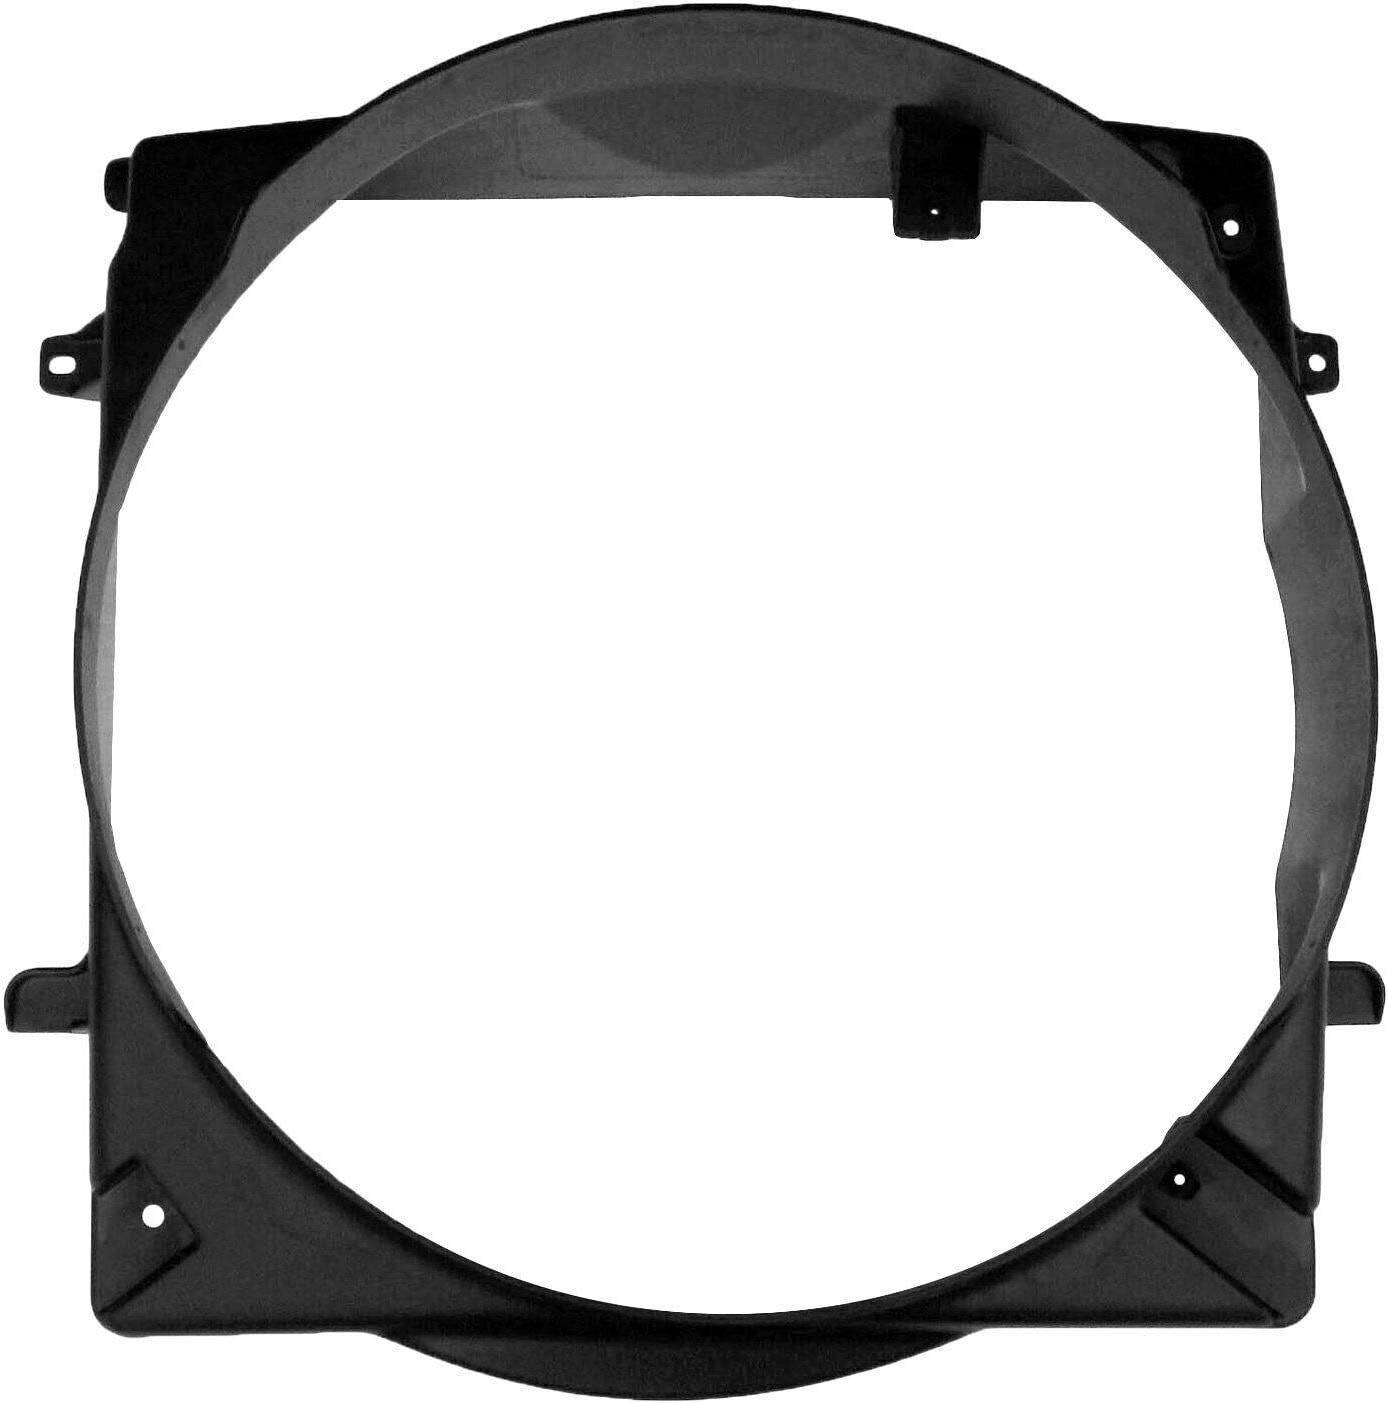 Seattle Mall For Jeep Liberty 2002-2007 TruParts Fan Cooling Engine Shroud Purchase